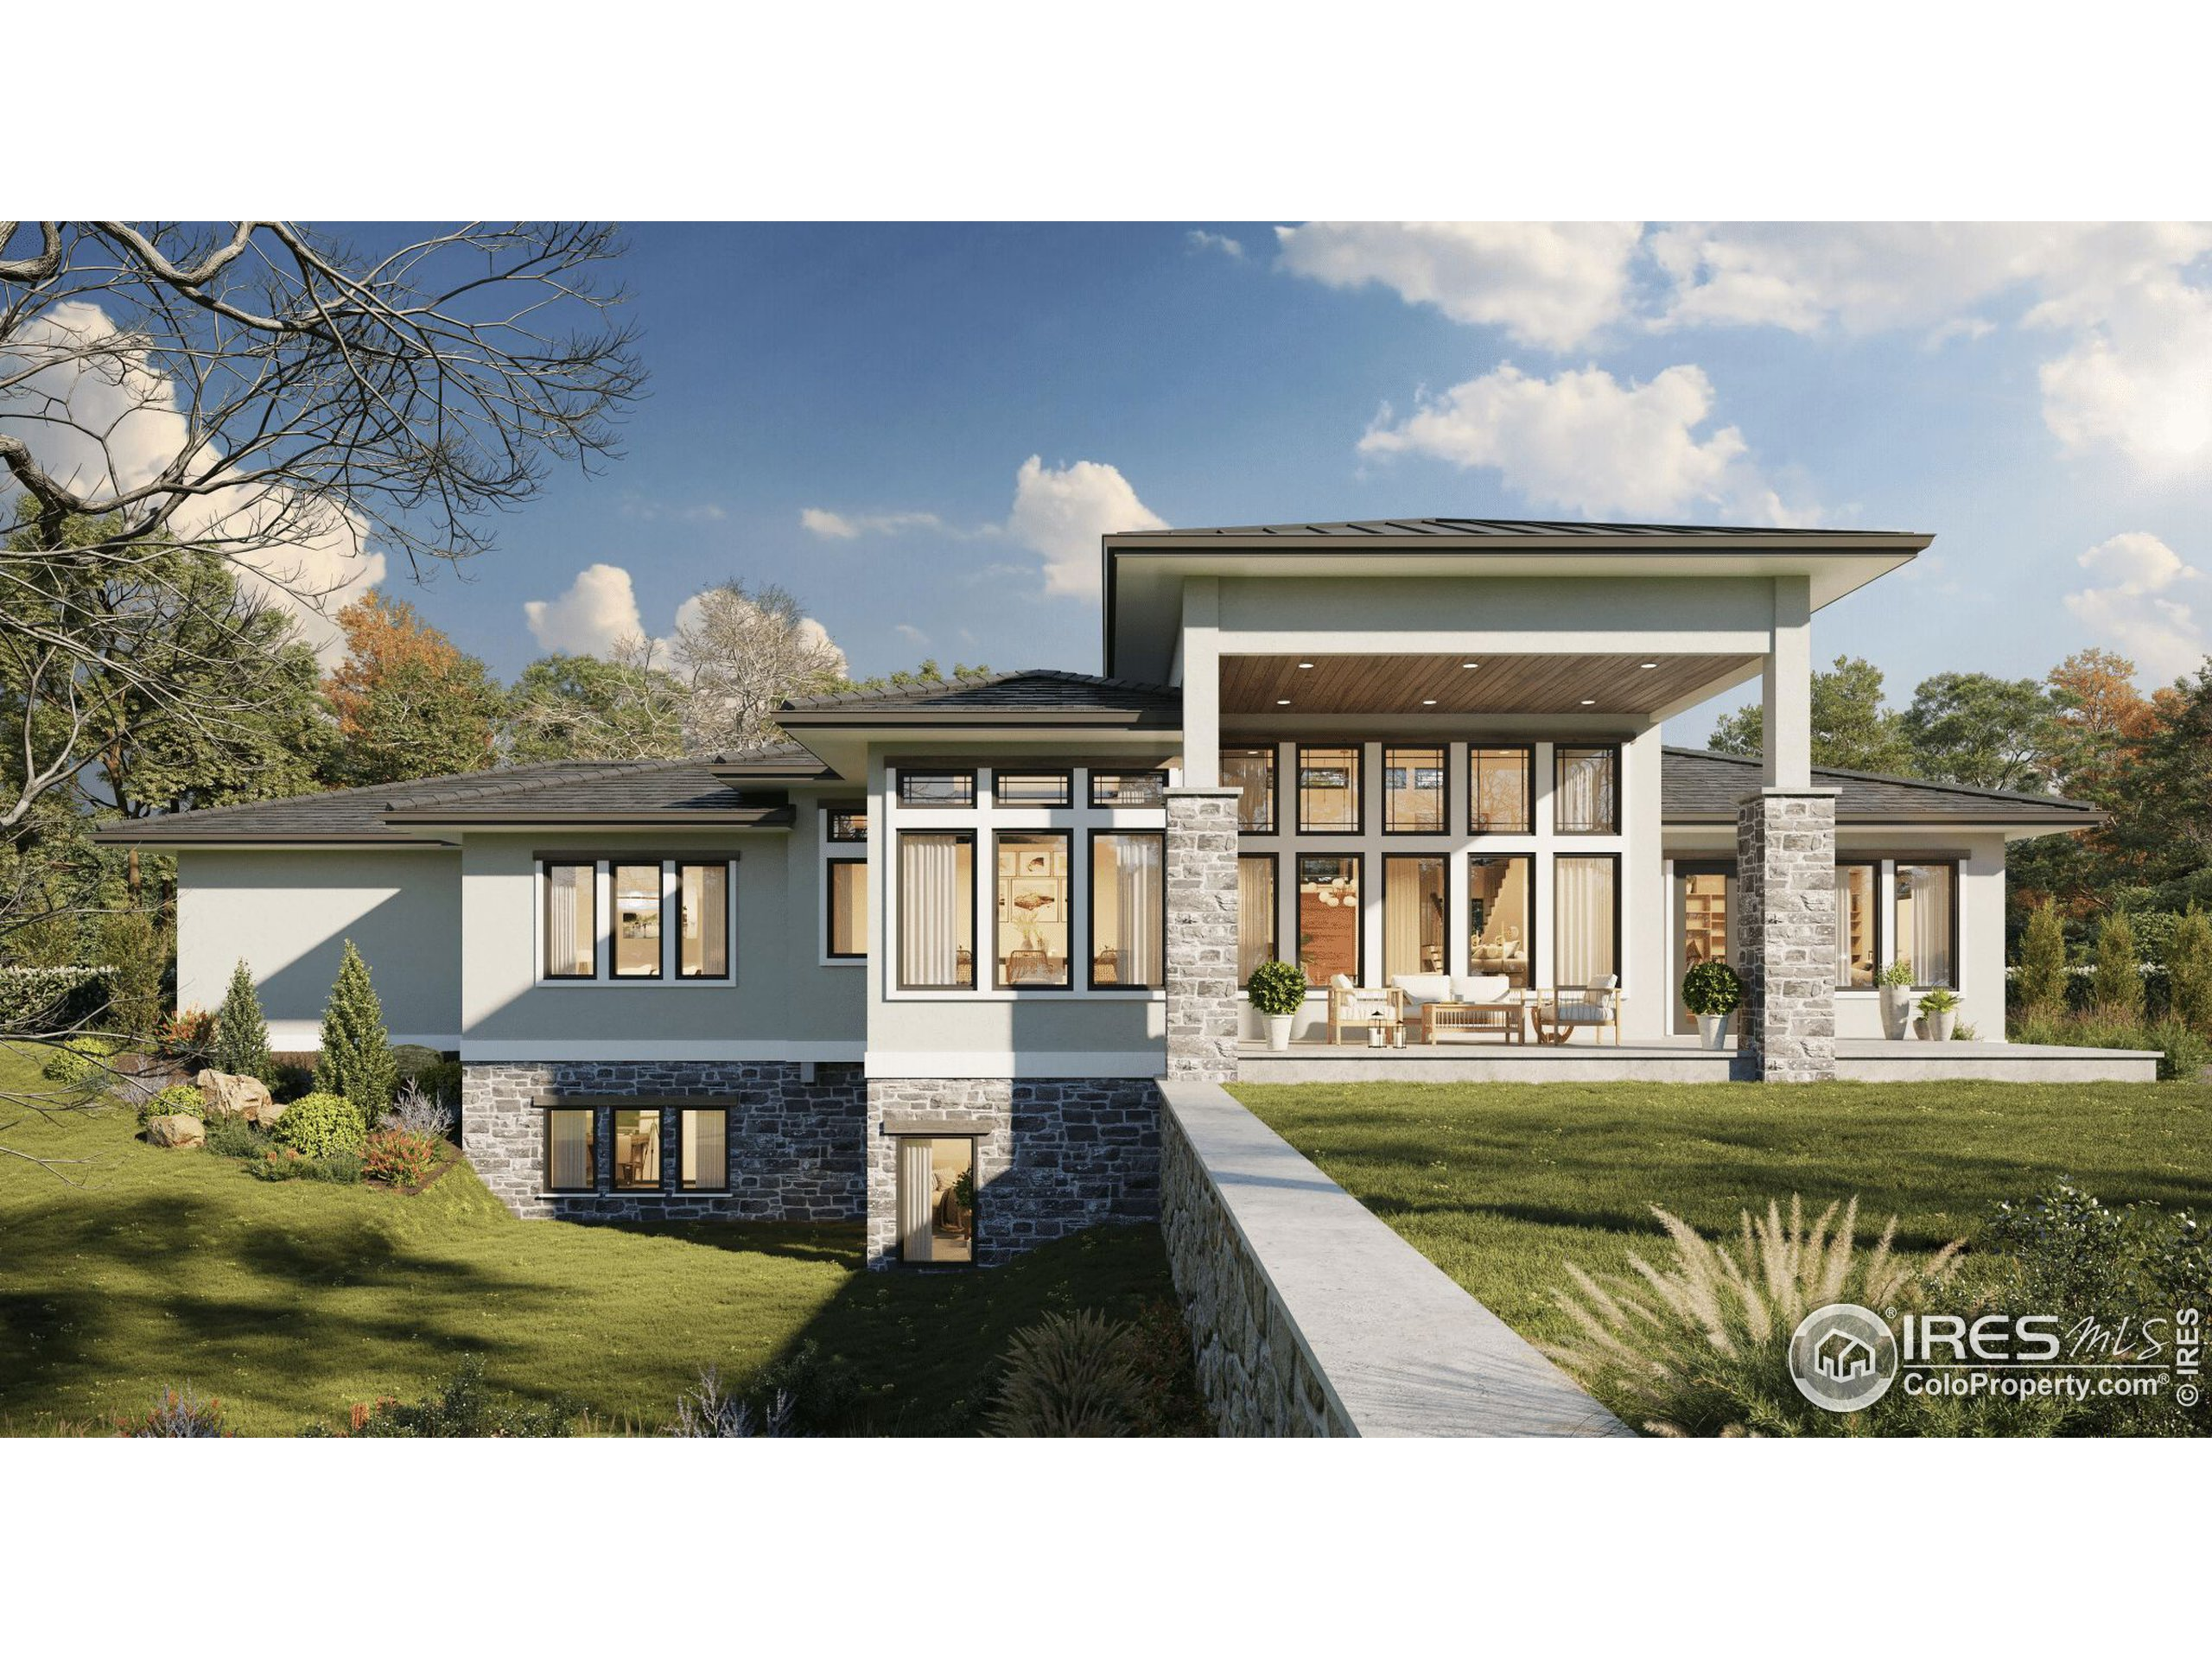 Rear Rendering of Home To-Be-Built